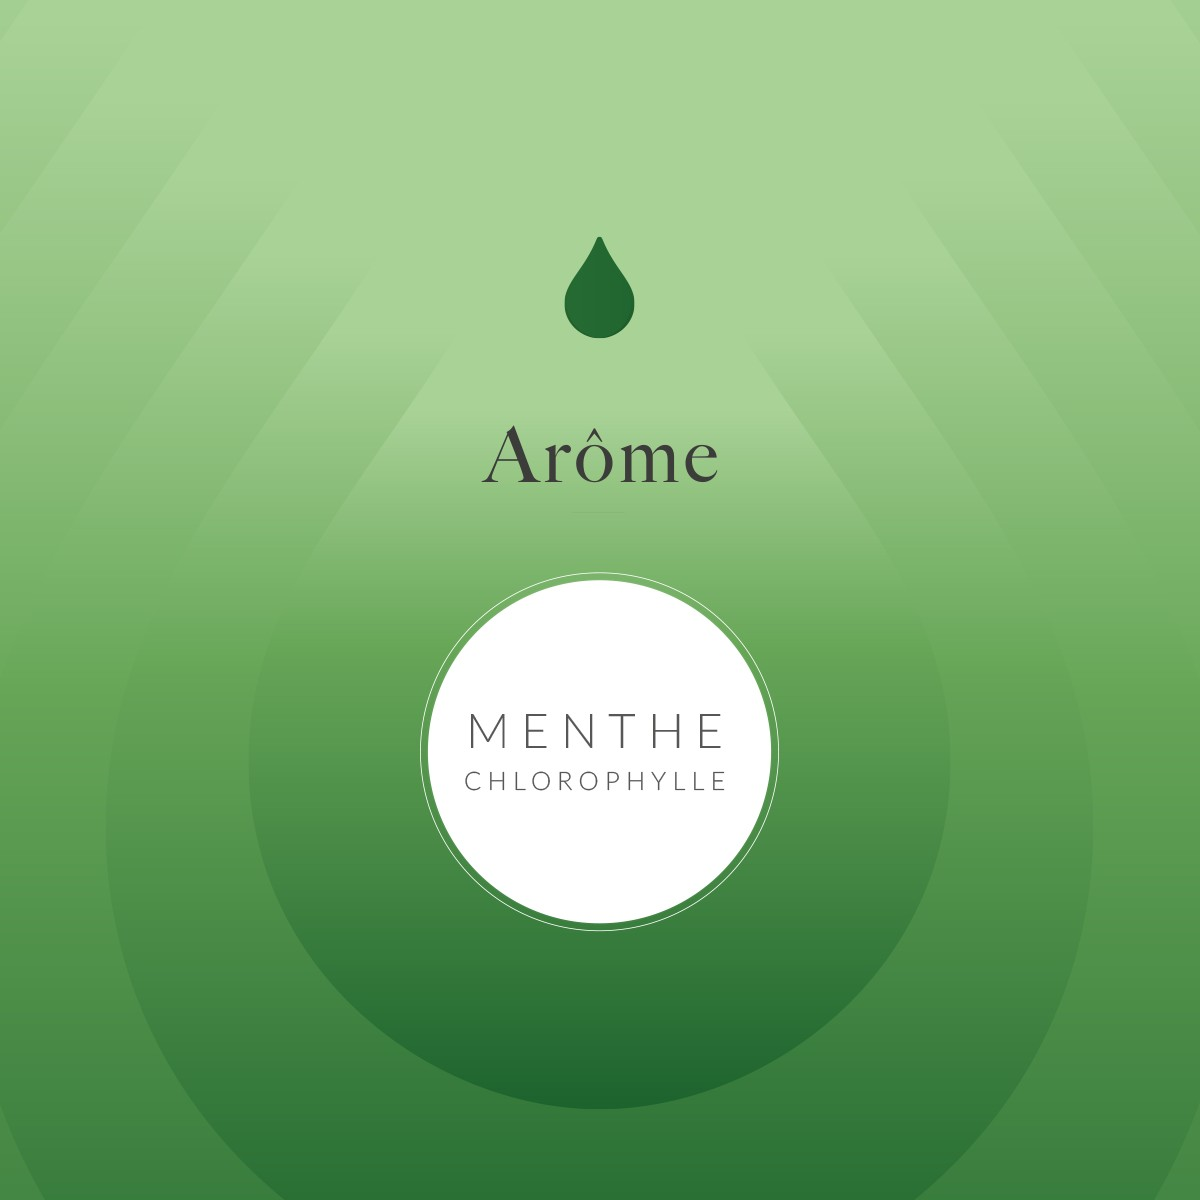 Arôme Alimentaire Menthe Chlorophylle